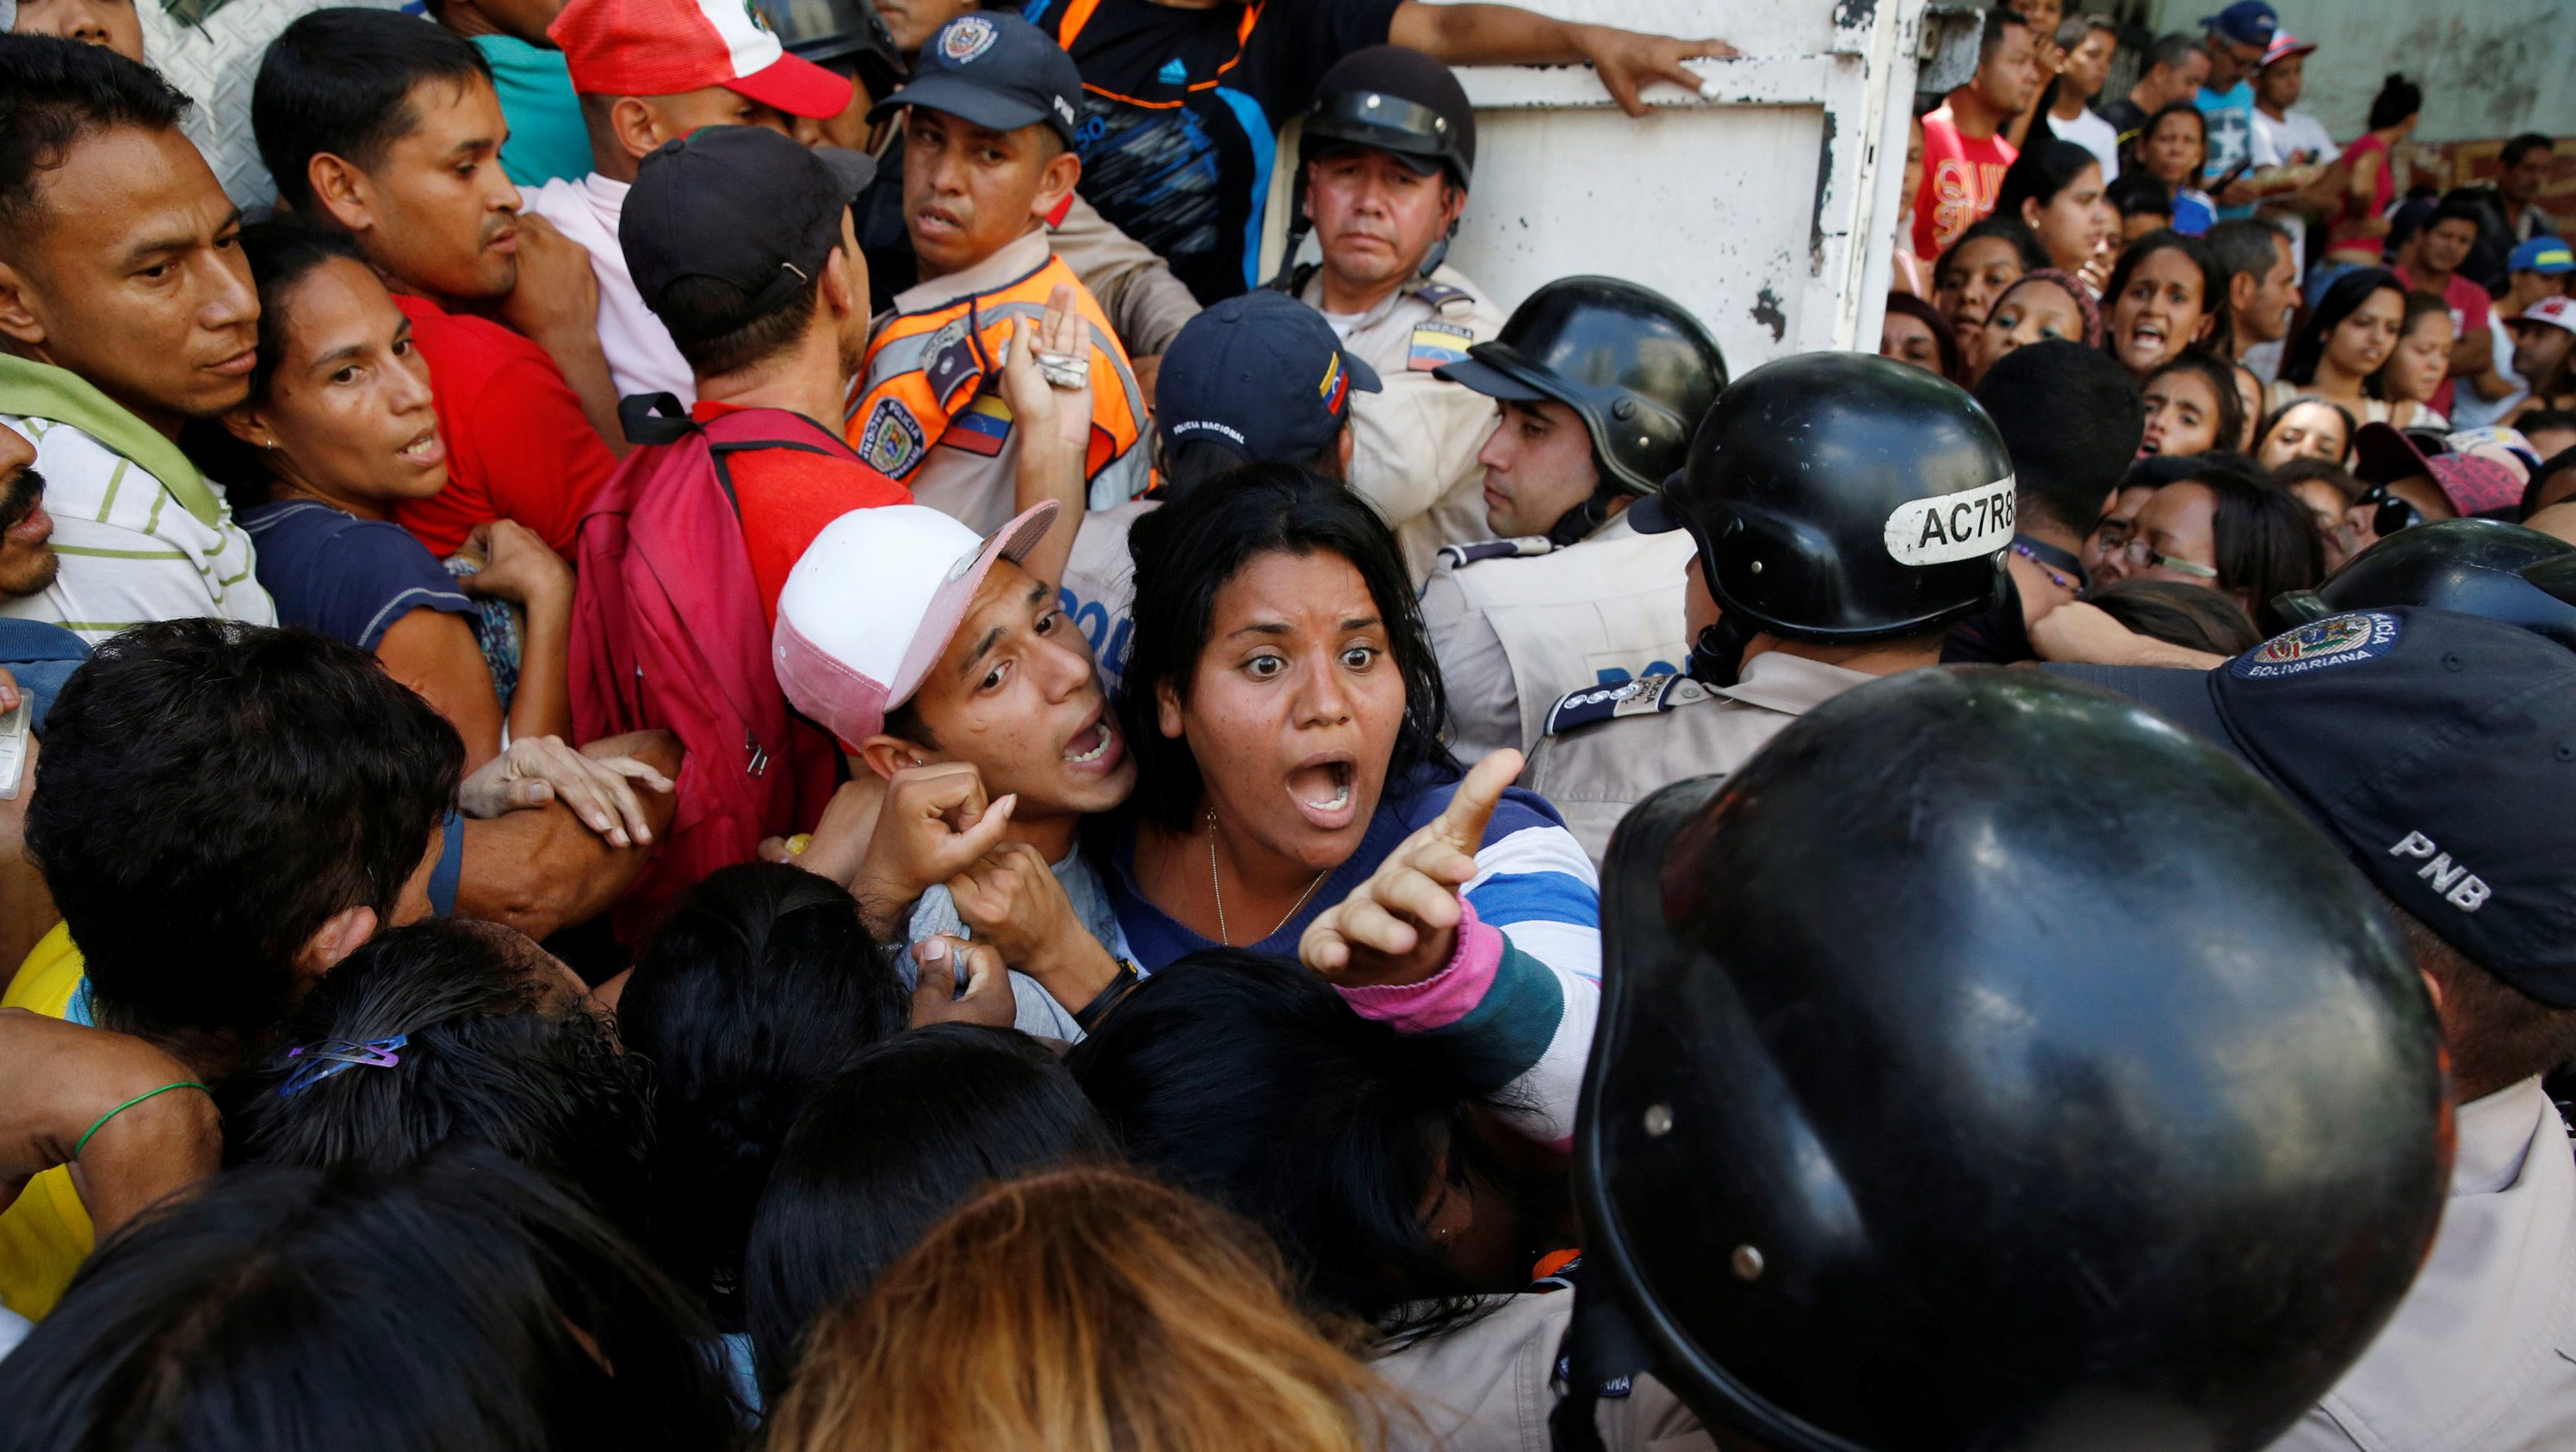 People gather to try to buy pasta while riot police try to control the crowd outside a supermarket in Caracas